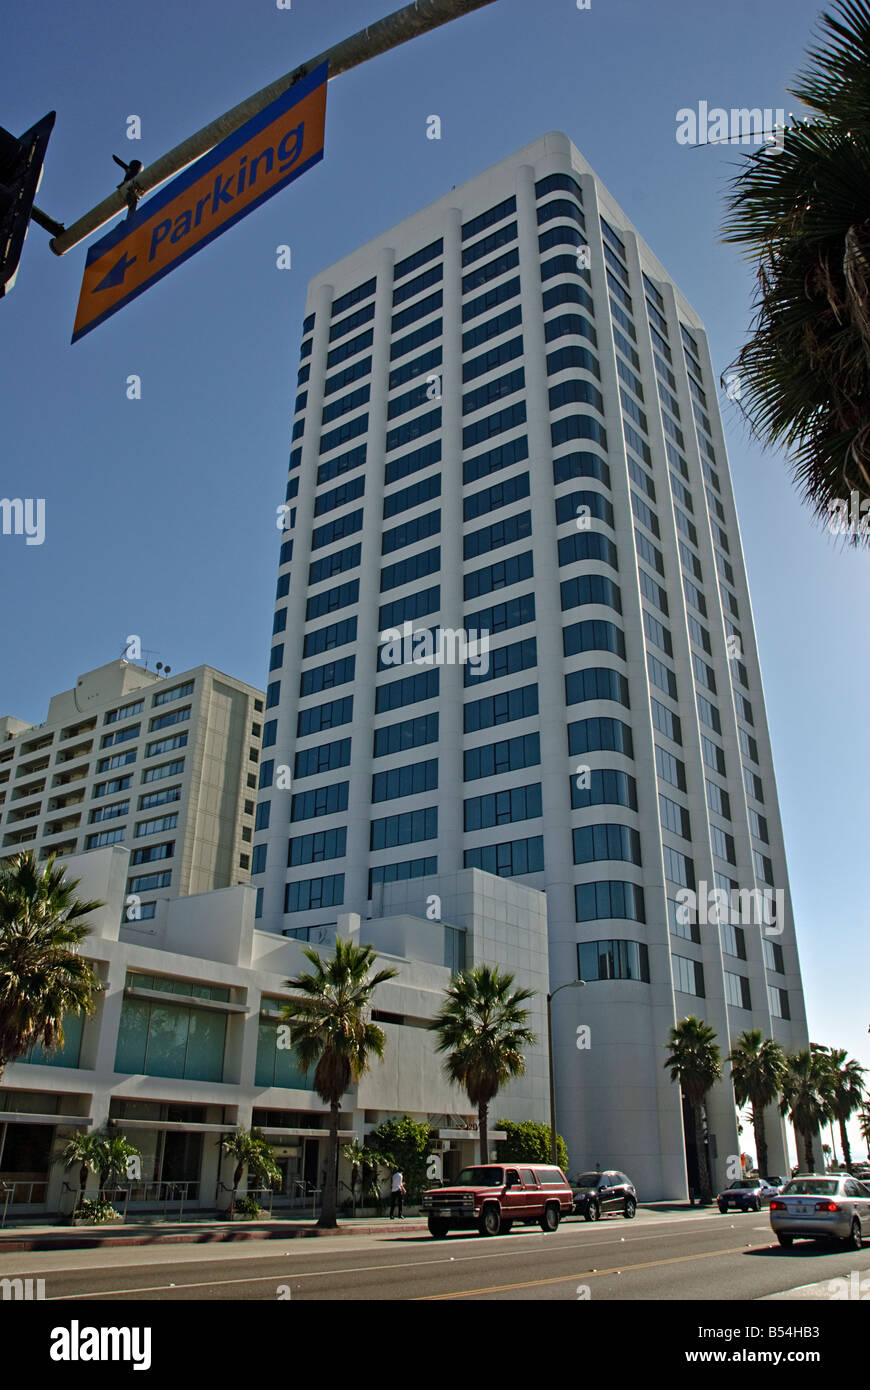 100 Wilshire Building is the tallest building in Santa monica, Situated on a bluff over looking Santa Monica Beach - Stock Image